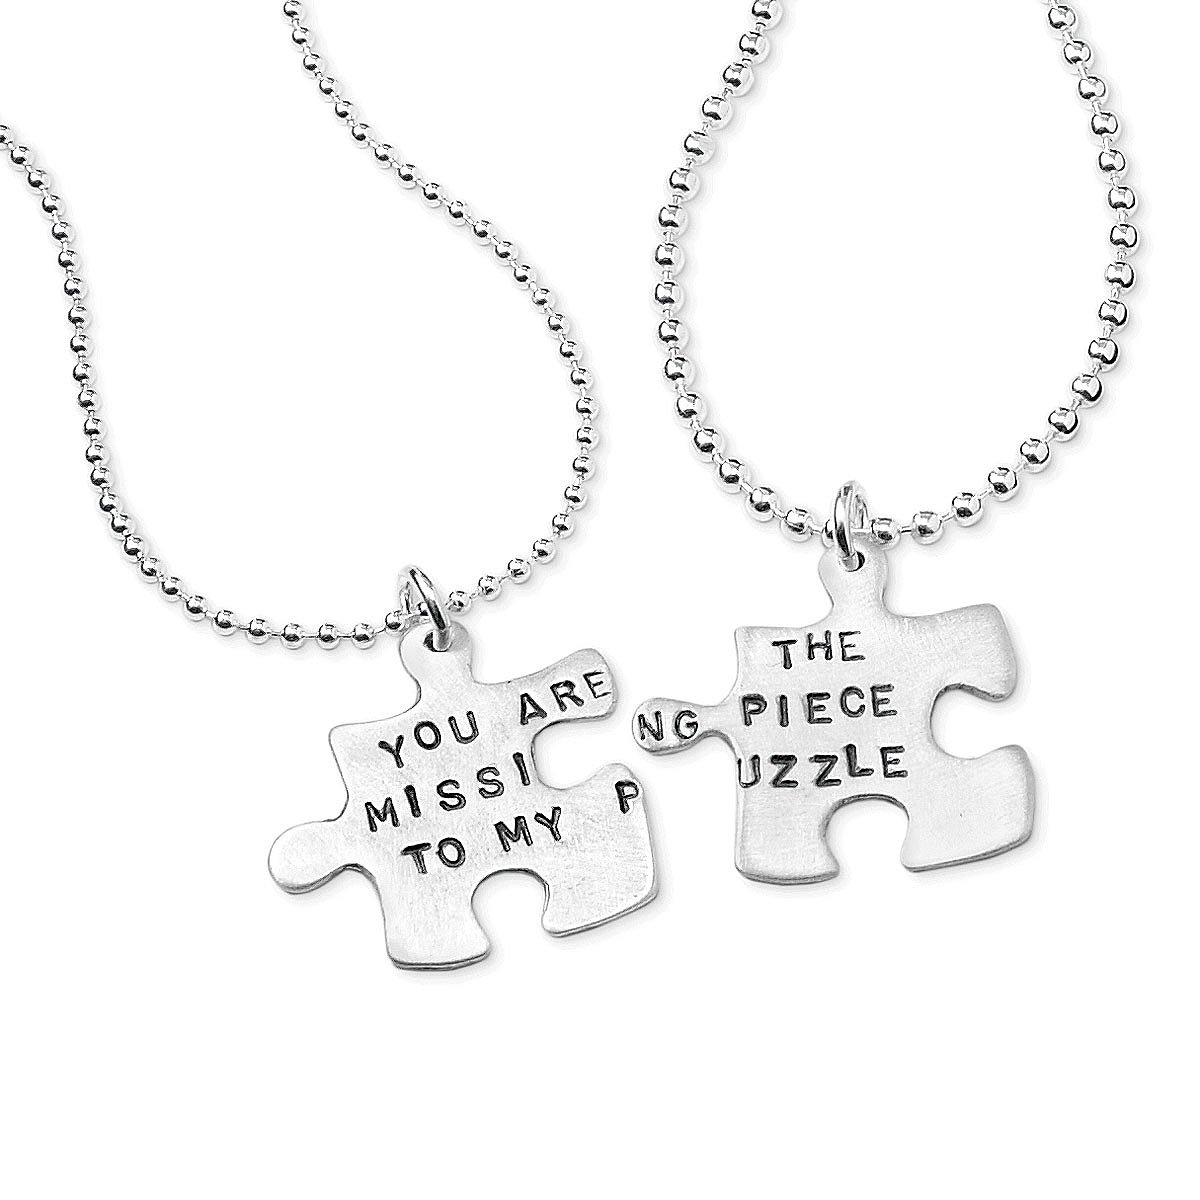 products gift and collections heart initials his anniversary jewelry custom puzzle necklaces her couples piece cut necklace with